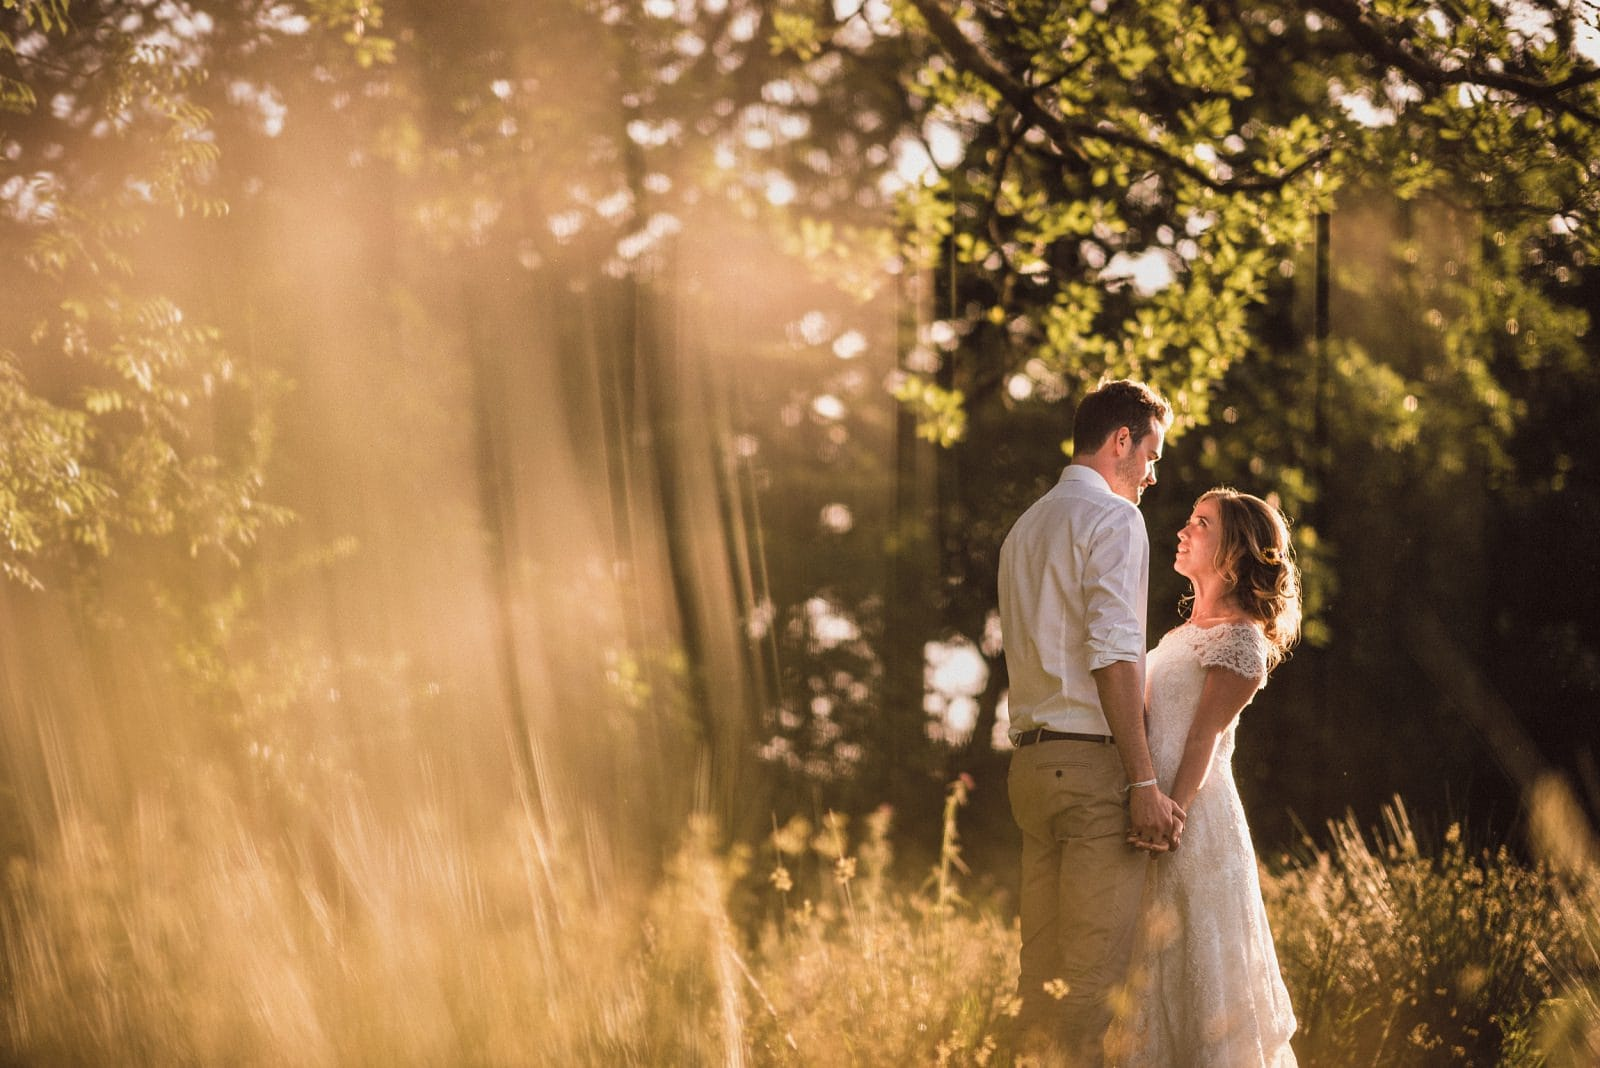 Wedding portrait at Nancarrow Farm with sunlight coming through trees and golden grass